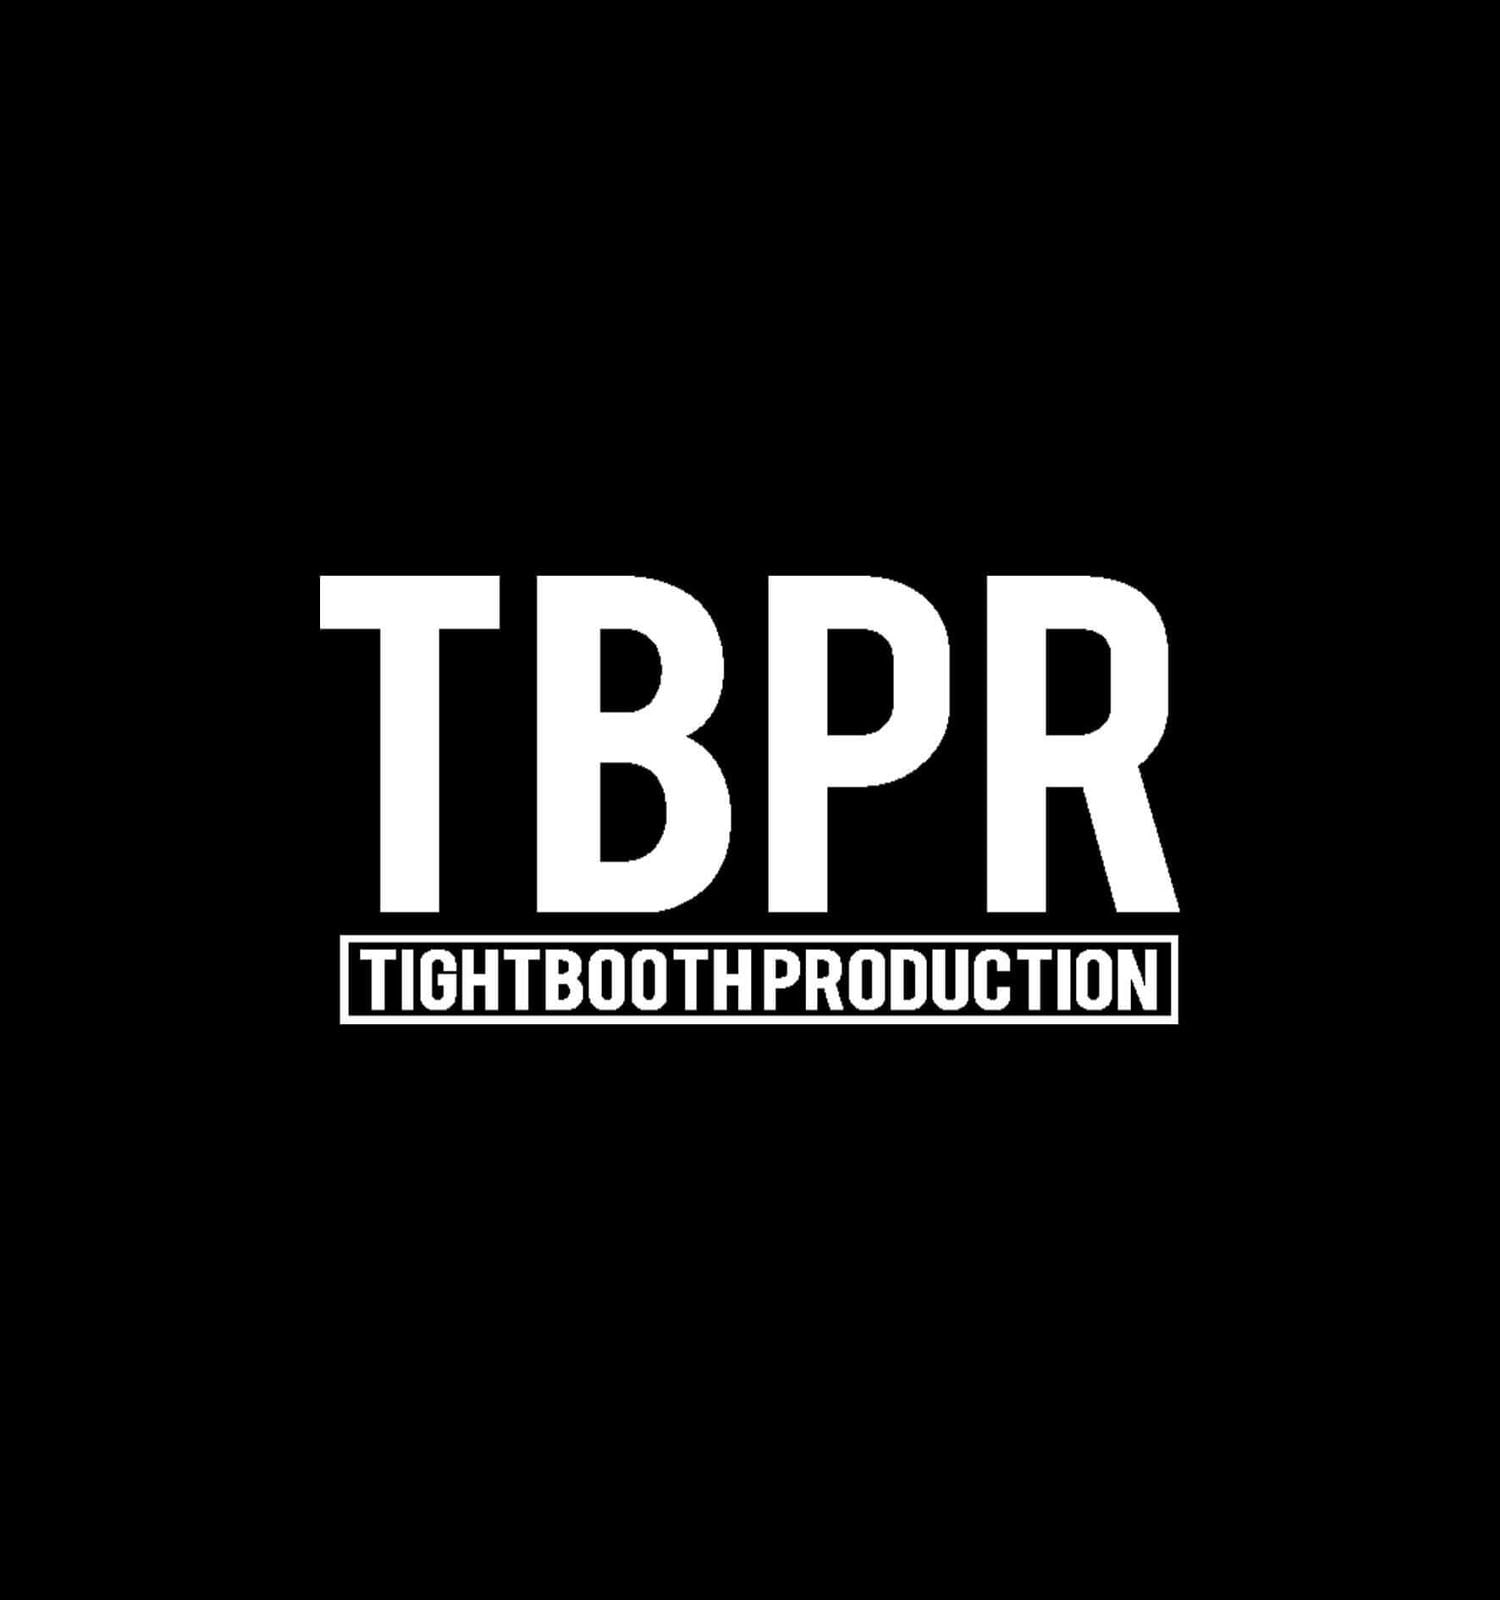 TIGHTBOOTH PRODUCTION